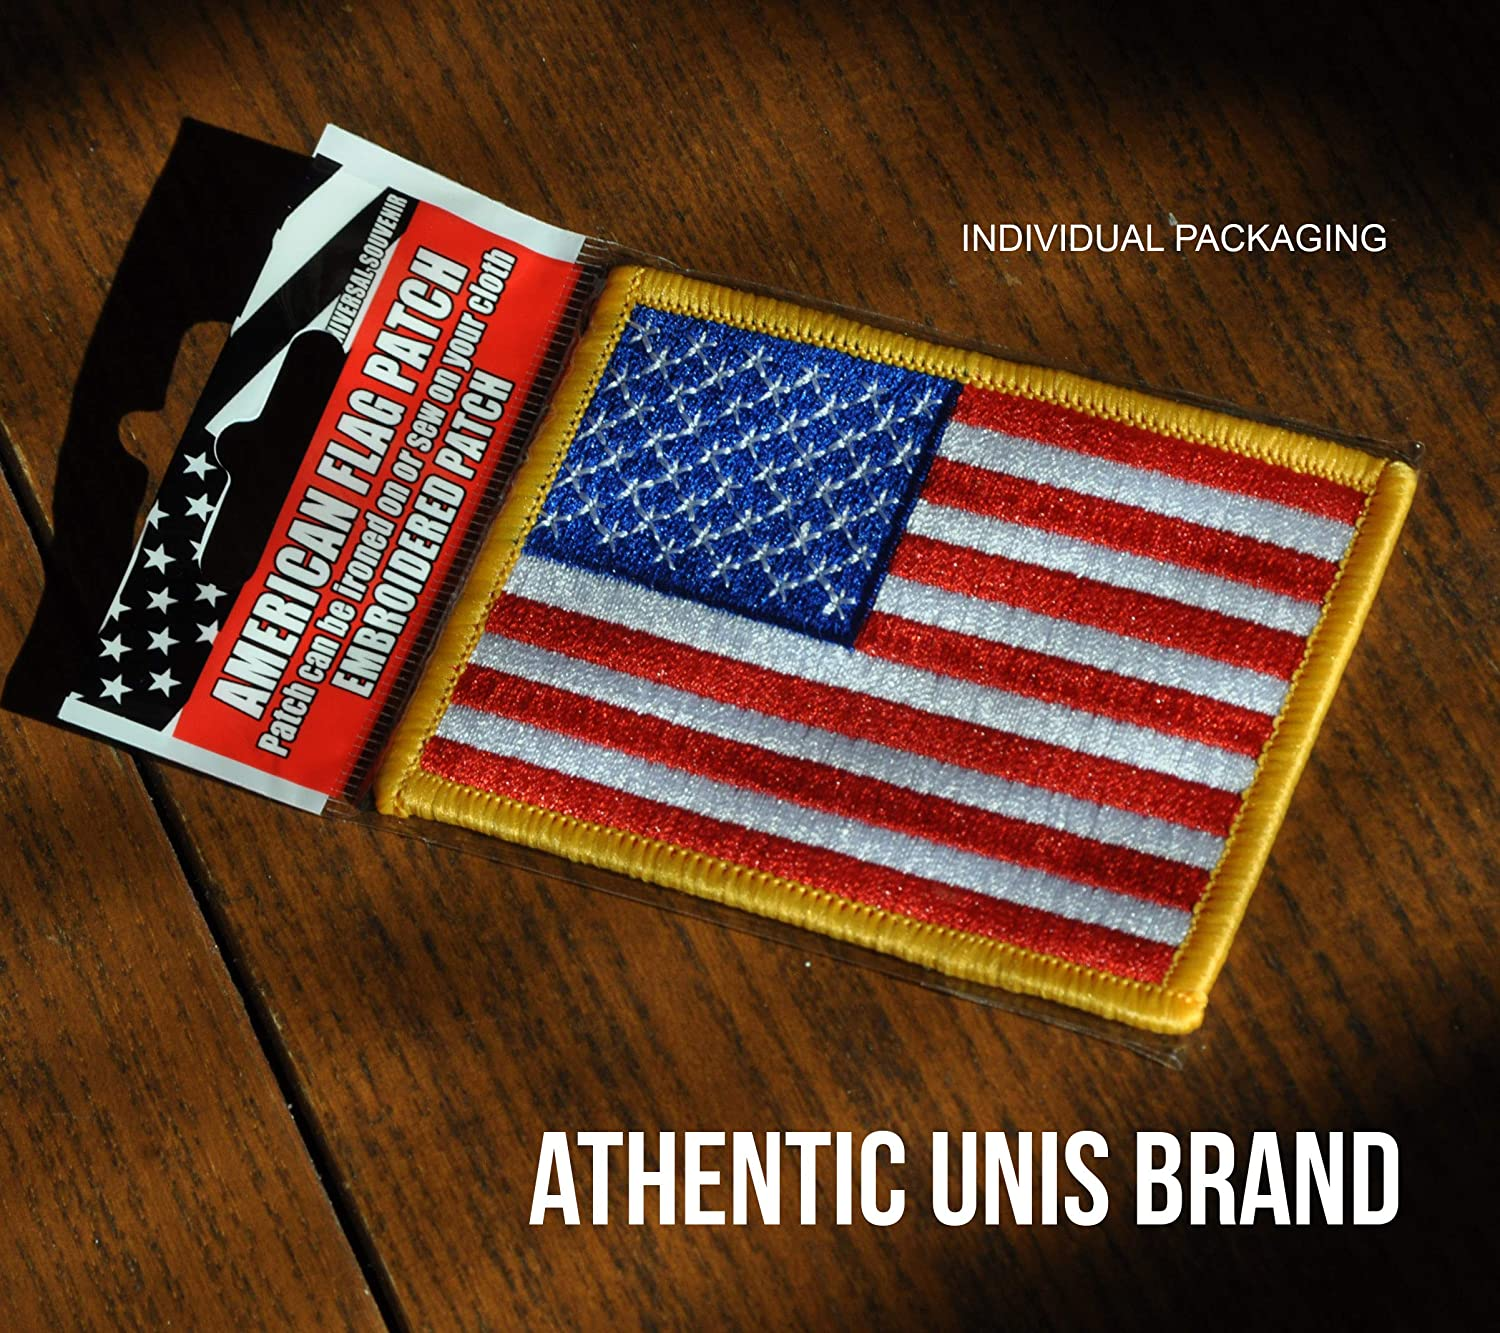 USA UNITED STATES FLAG SCRIPT EMBROIDERED PATCH 3.5 X 2 INCHES